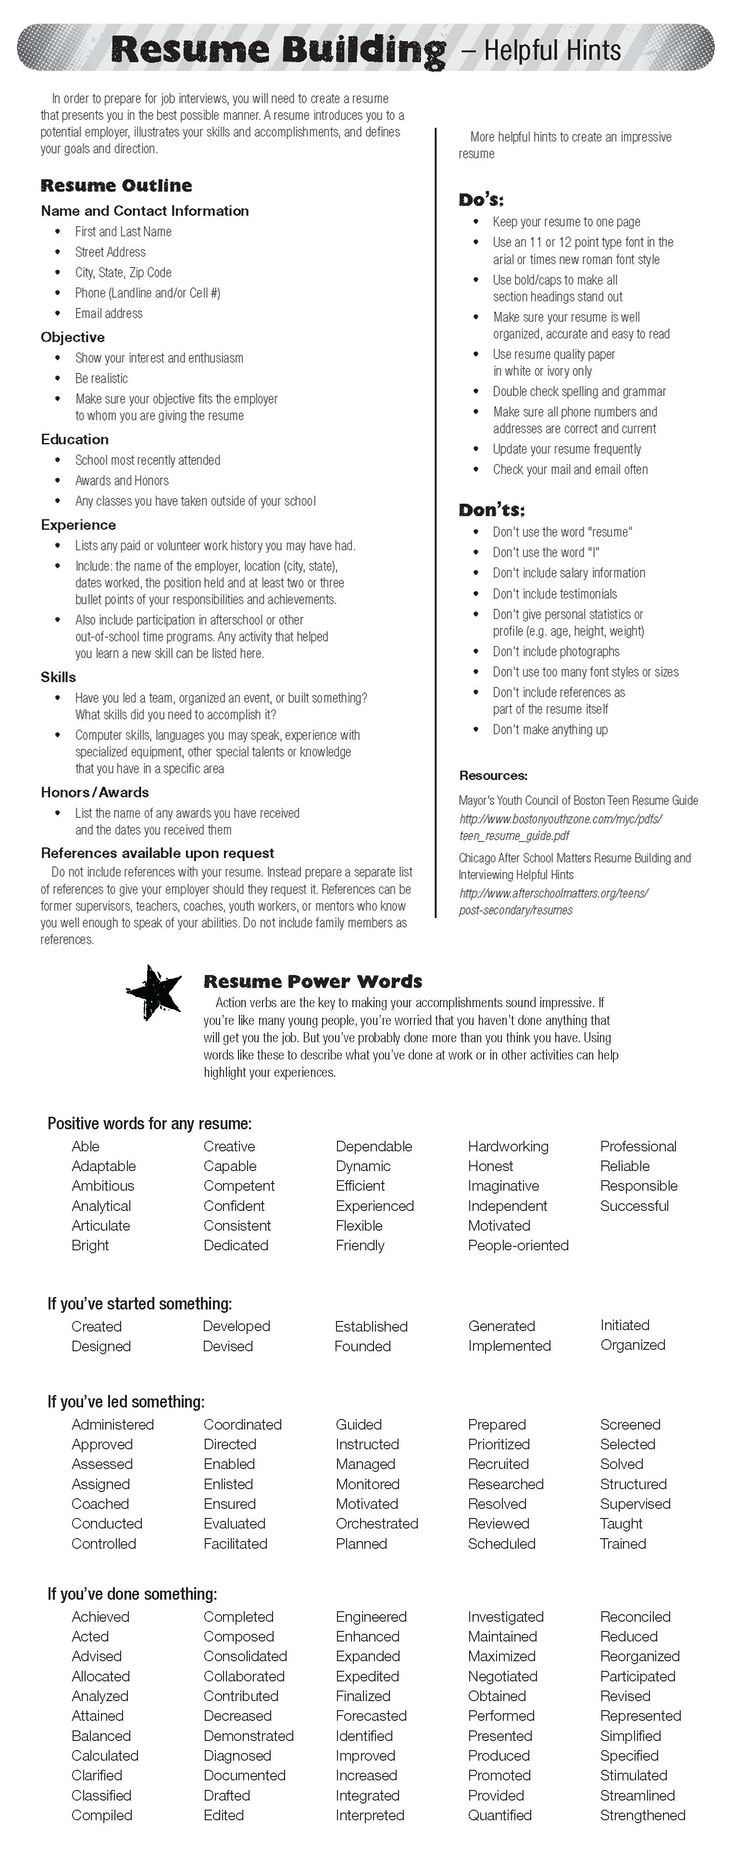 Opposenewapstandardsus  Nice  Ideas About Resume On Pinterest  Cv Format Resume  With Lovely Check Out Todays Resume Building Tips Resume Resumepowerwords With Enchanting Posted Resumes Also Resume With No Experience Examples In Addition Recruiter Resume Samples And Resume For Web Developer As Well As Resume Line Spacing Additionally Resume Writers Wanted From Pinterestcom With Opposenewapstandardsus  Lovely  Ideas About Resume On Pinterest  Cv Format Resume  With Enchanting Check Out Todays Resume Building Tips Resume Resumepowerwords And Nice Posted Resumes Also Resume With No Experience Examples In Addition Recruiter Resume Samples From Pinterestcom